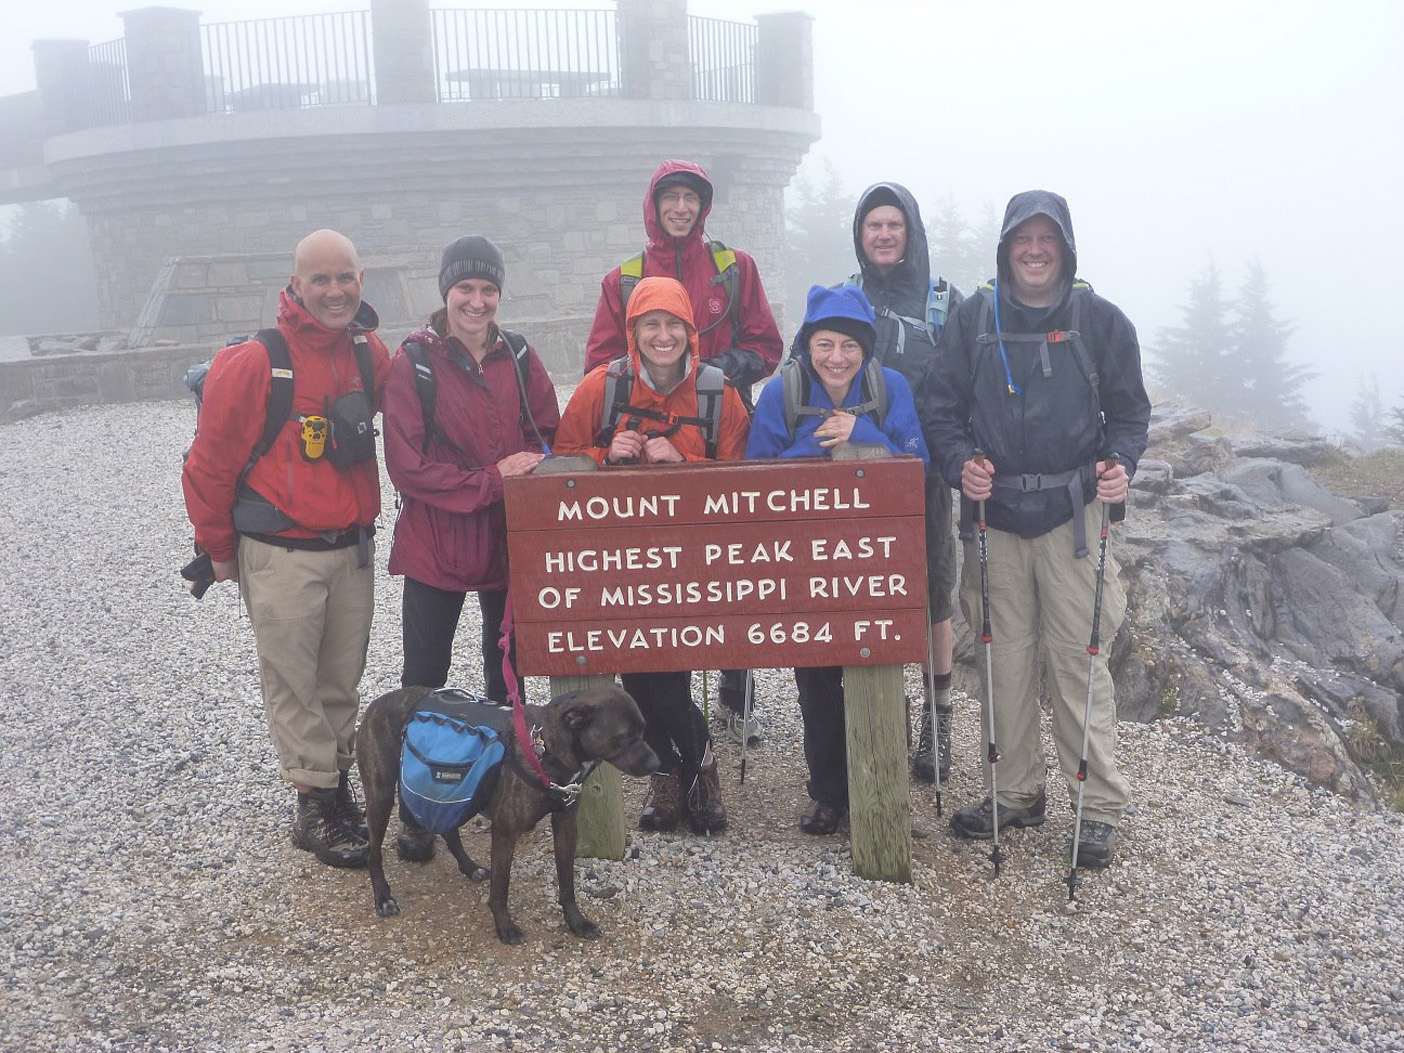 Group at the summit of Mount Mitchell! (from left to right: Tomas, Janice, Niki (dog), Ashton, Omar, Amy, David B., me) Photo by Ashton.